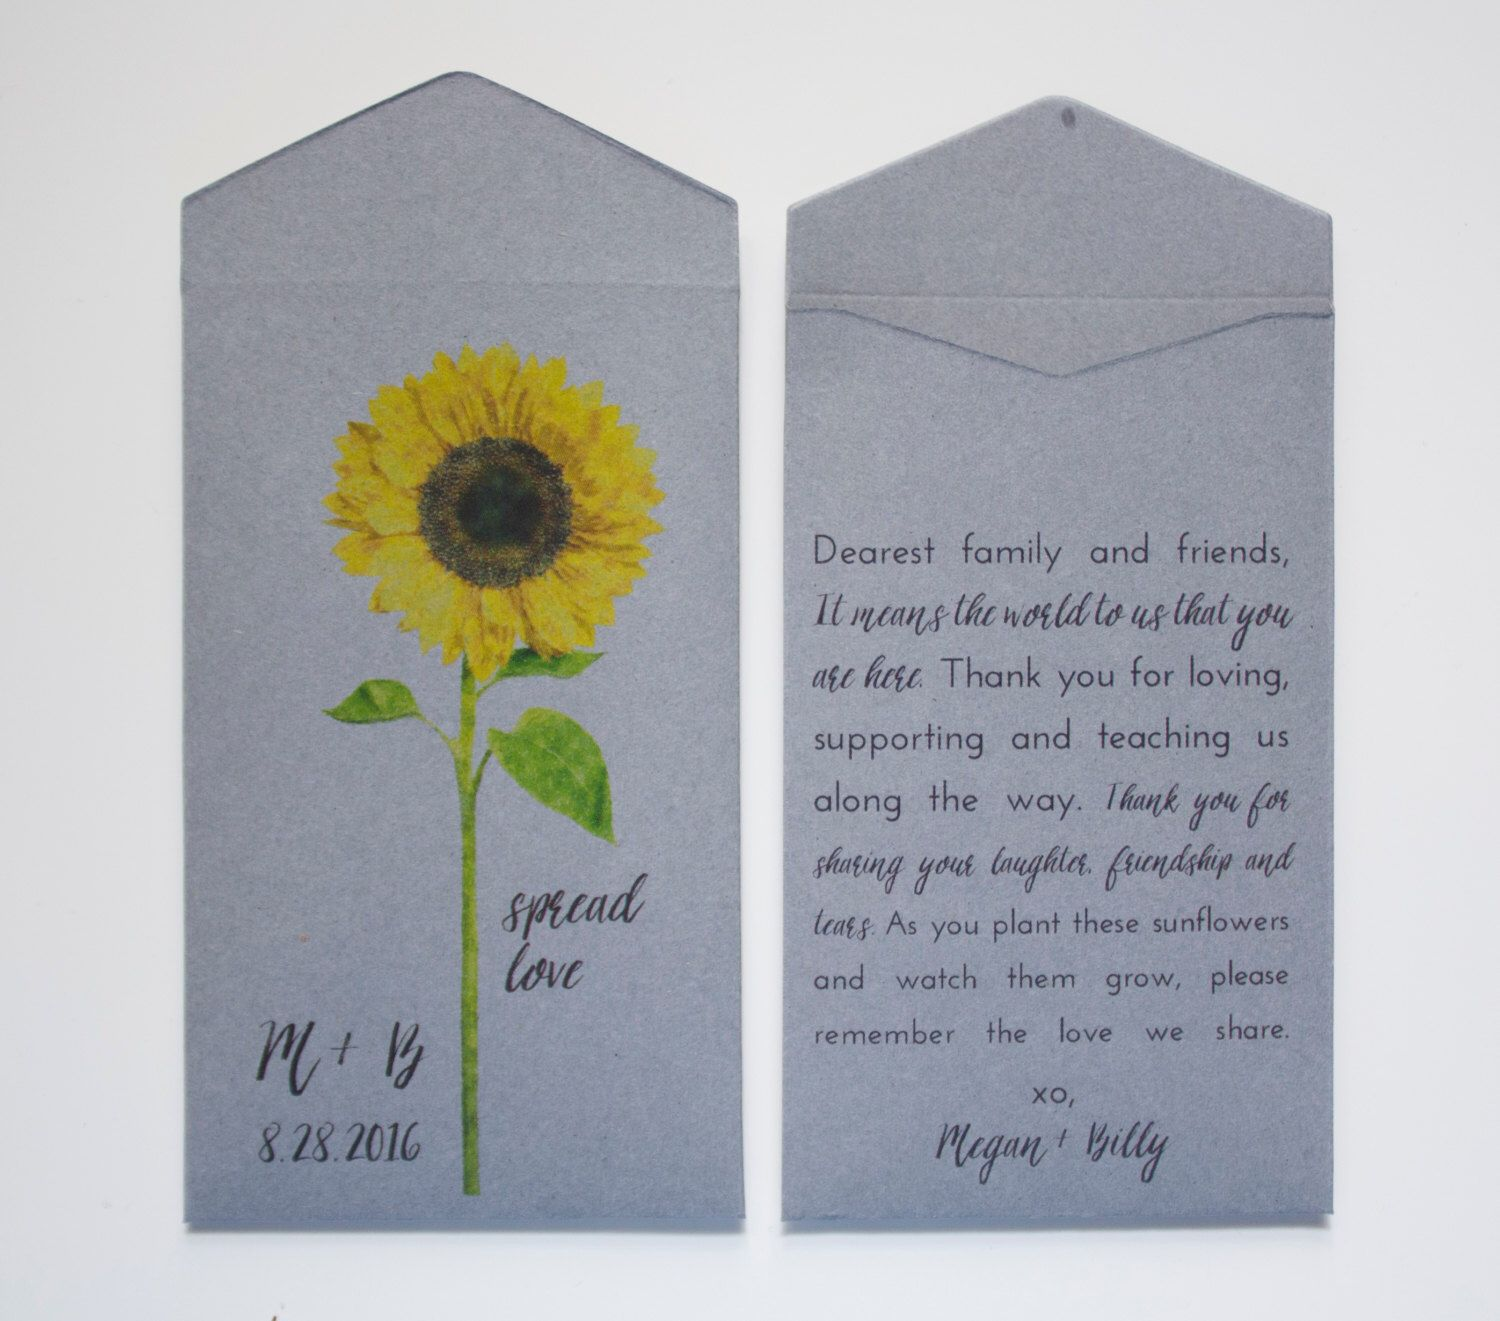 Sunflower Seed Packet Wedding Favor Envelopes - Many Colors Available by Megmichelle on Etsy https://www.etsy.com/listing/235943801/sunflower-seed-packet-weddin